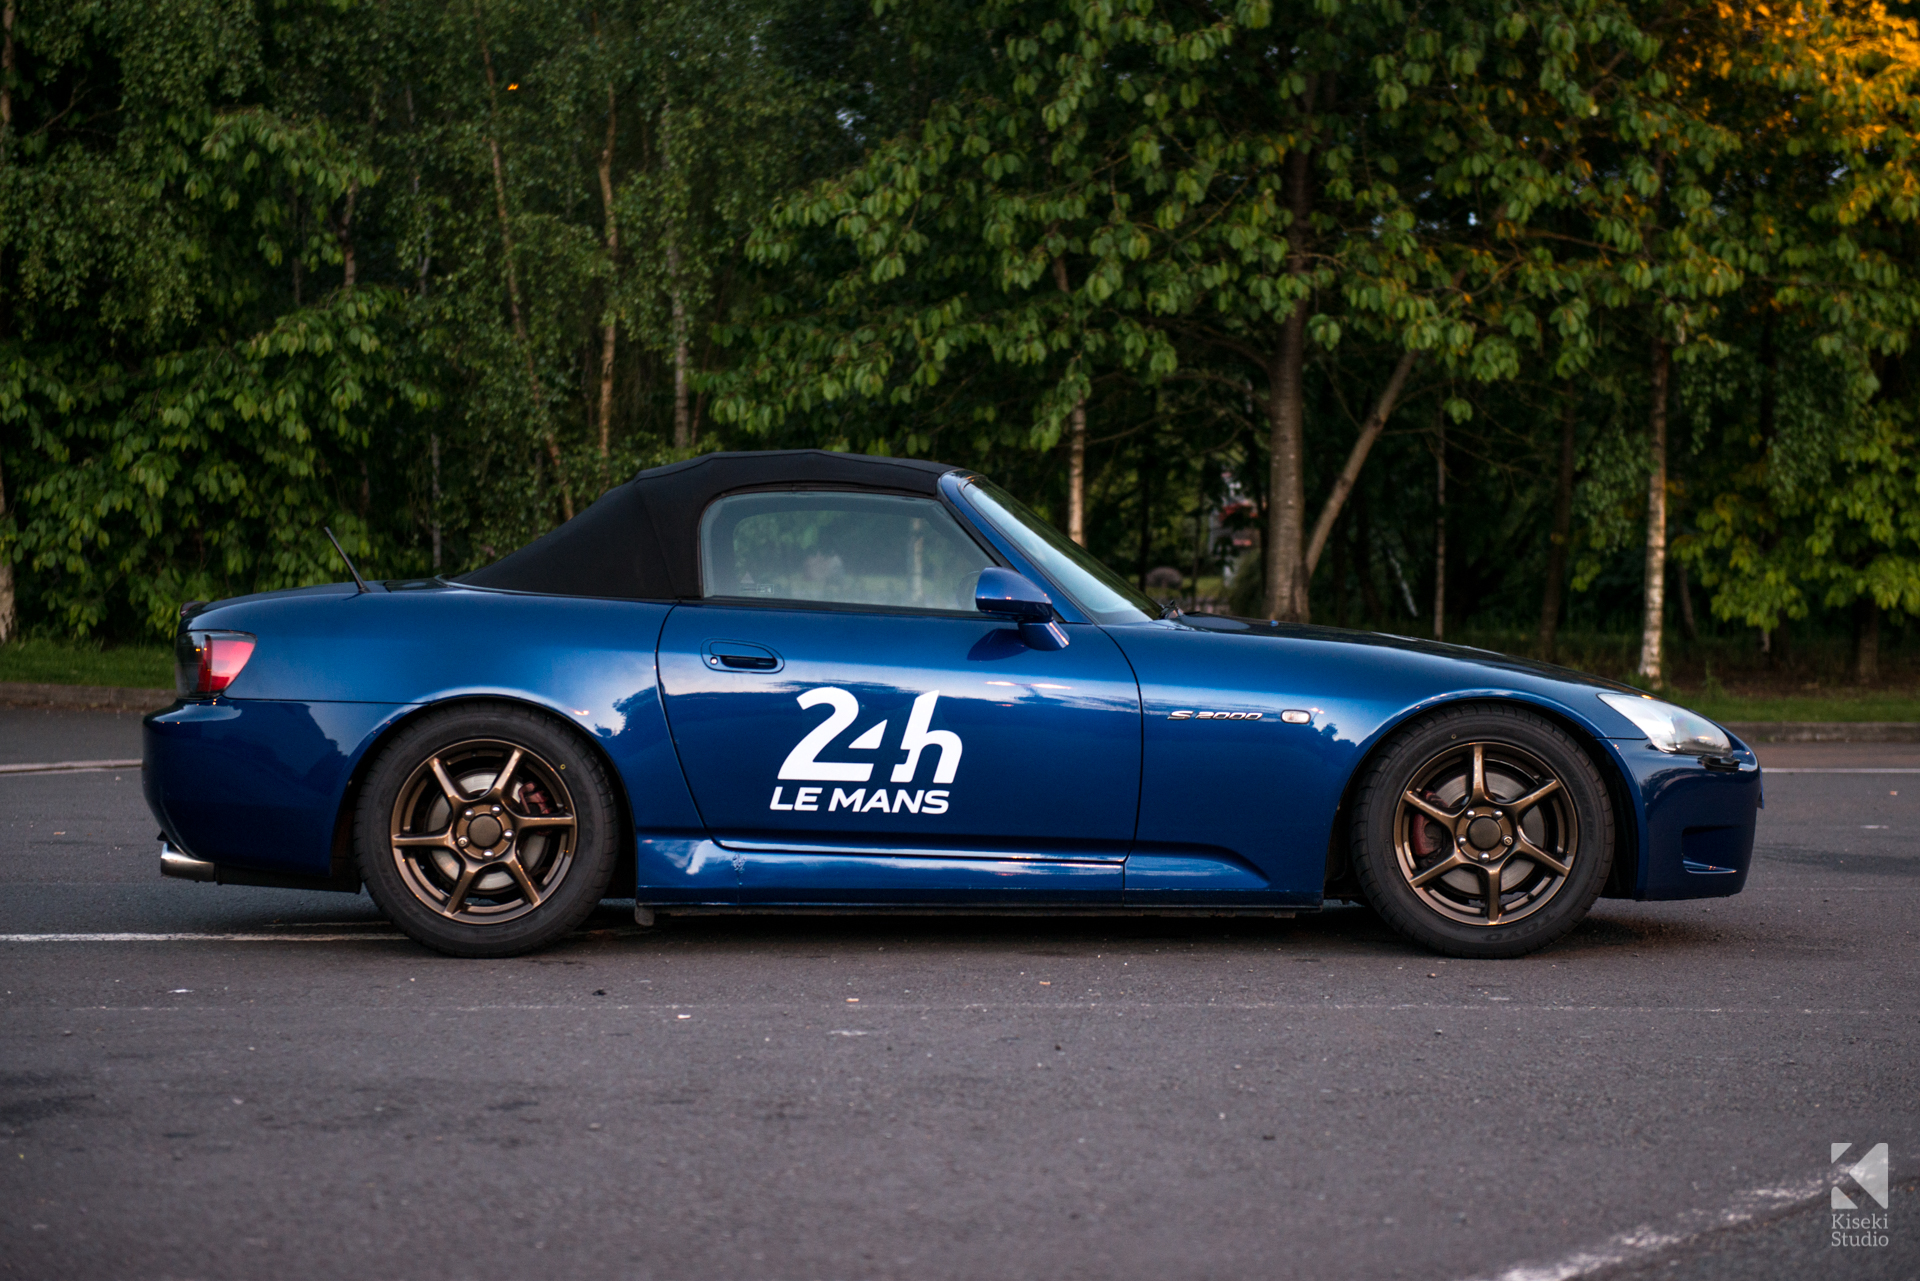 24-hours-le-mans-2015-journey-s2000-car-park-clean